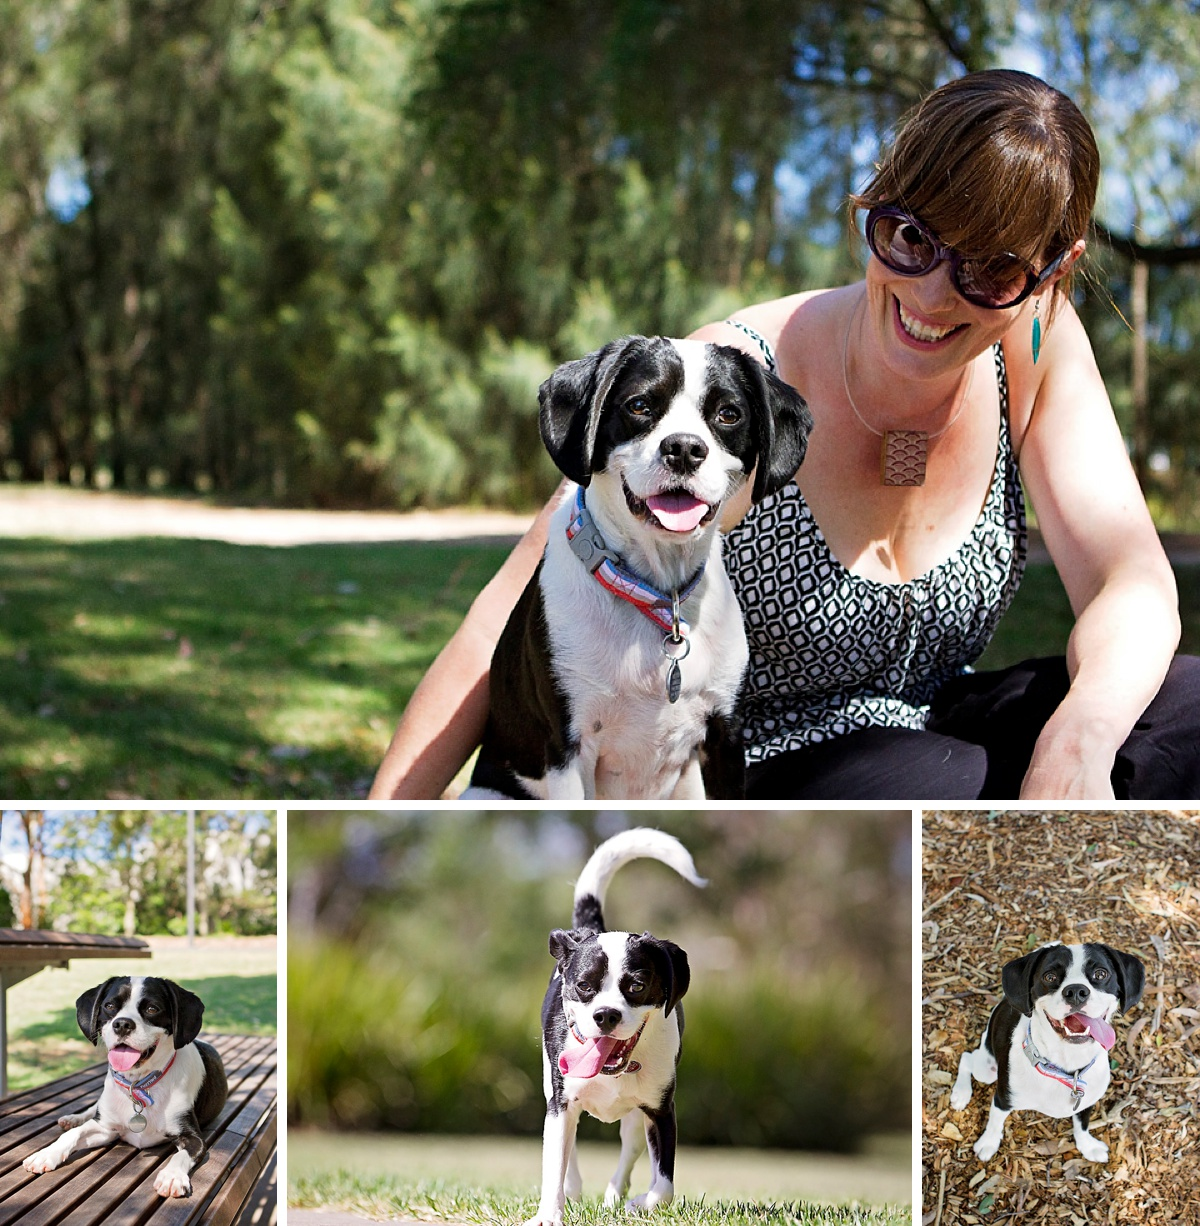 Next up in the Dog Days of Summer with Sydney pet photographer, Pawtastic Photography is Alix and her Cavalier cross Pug dog.